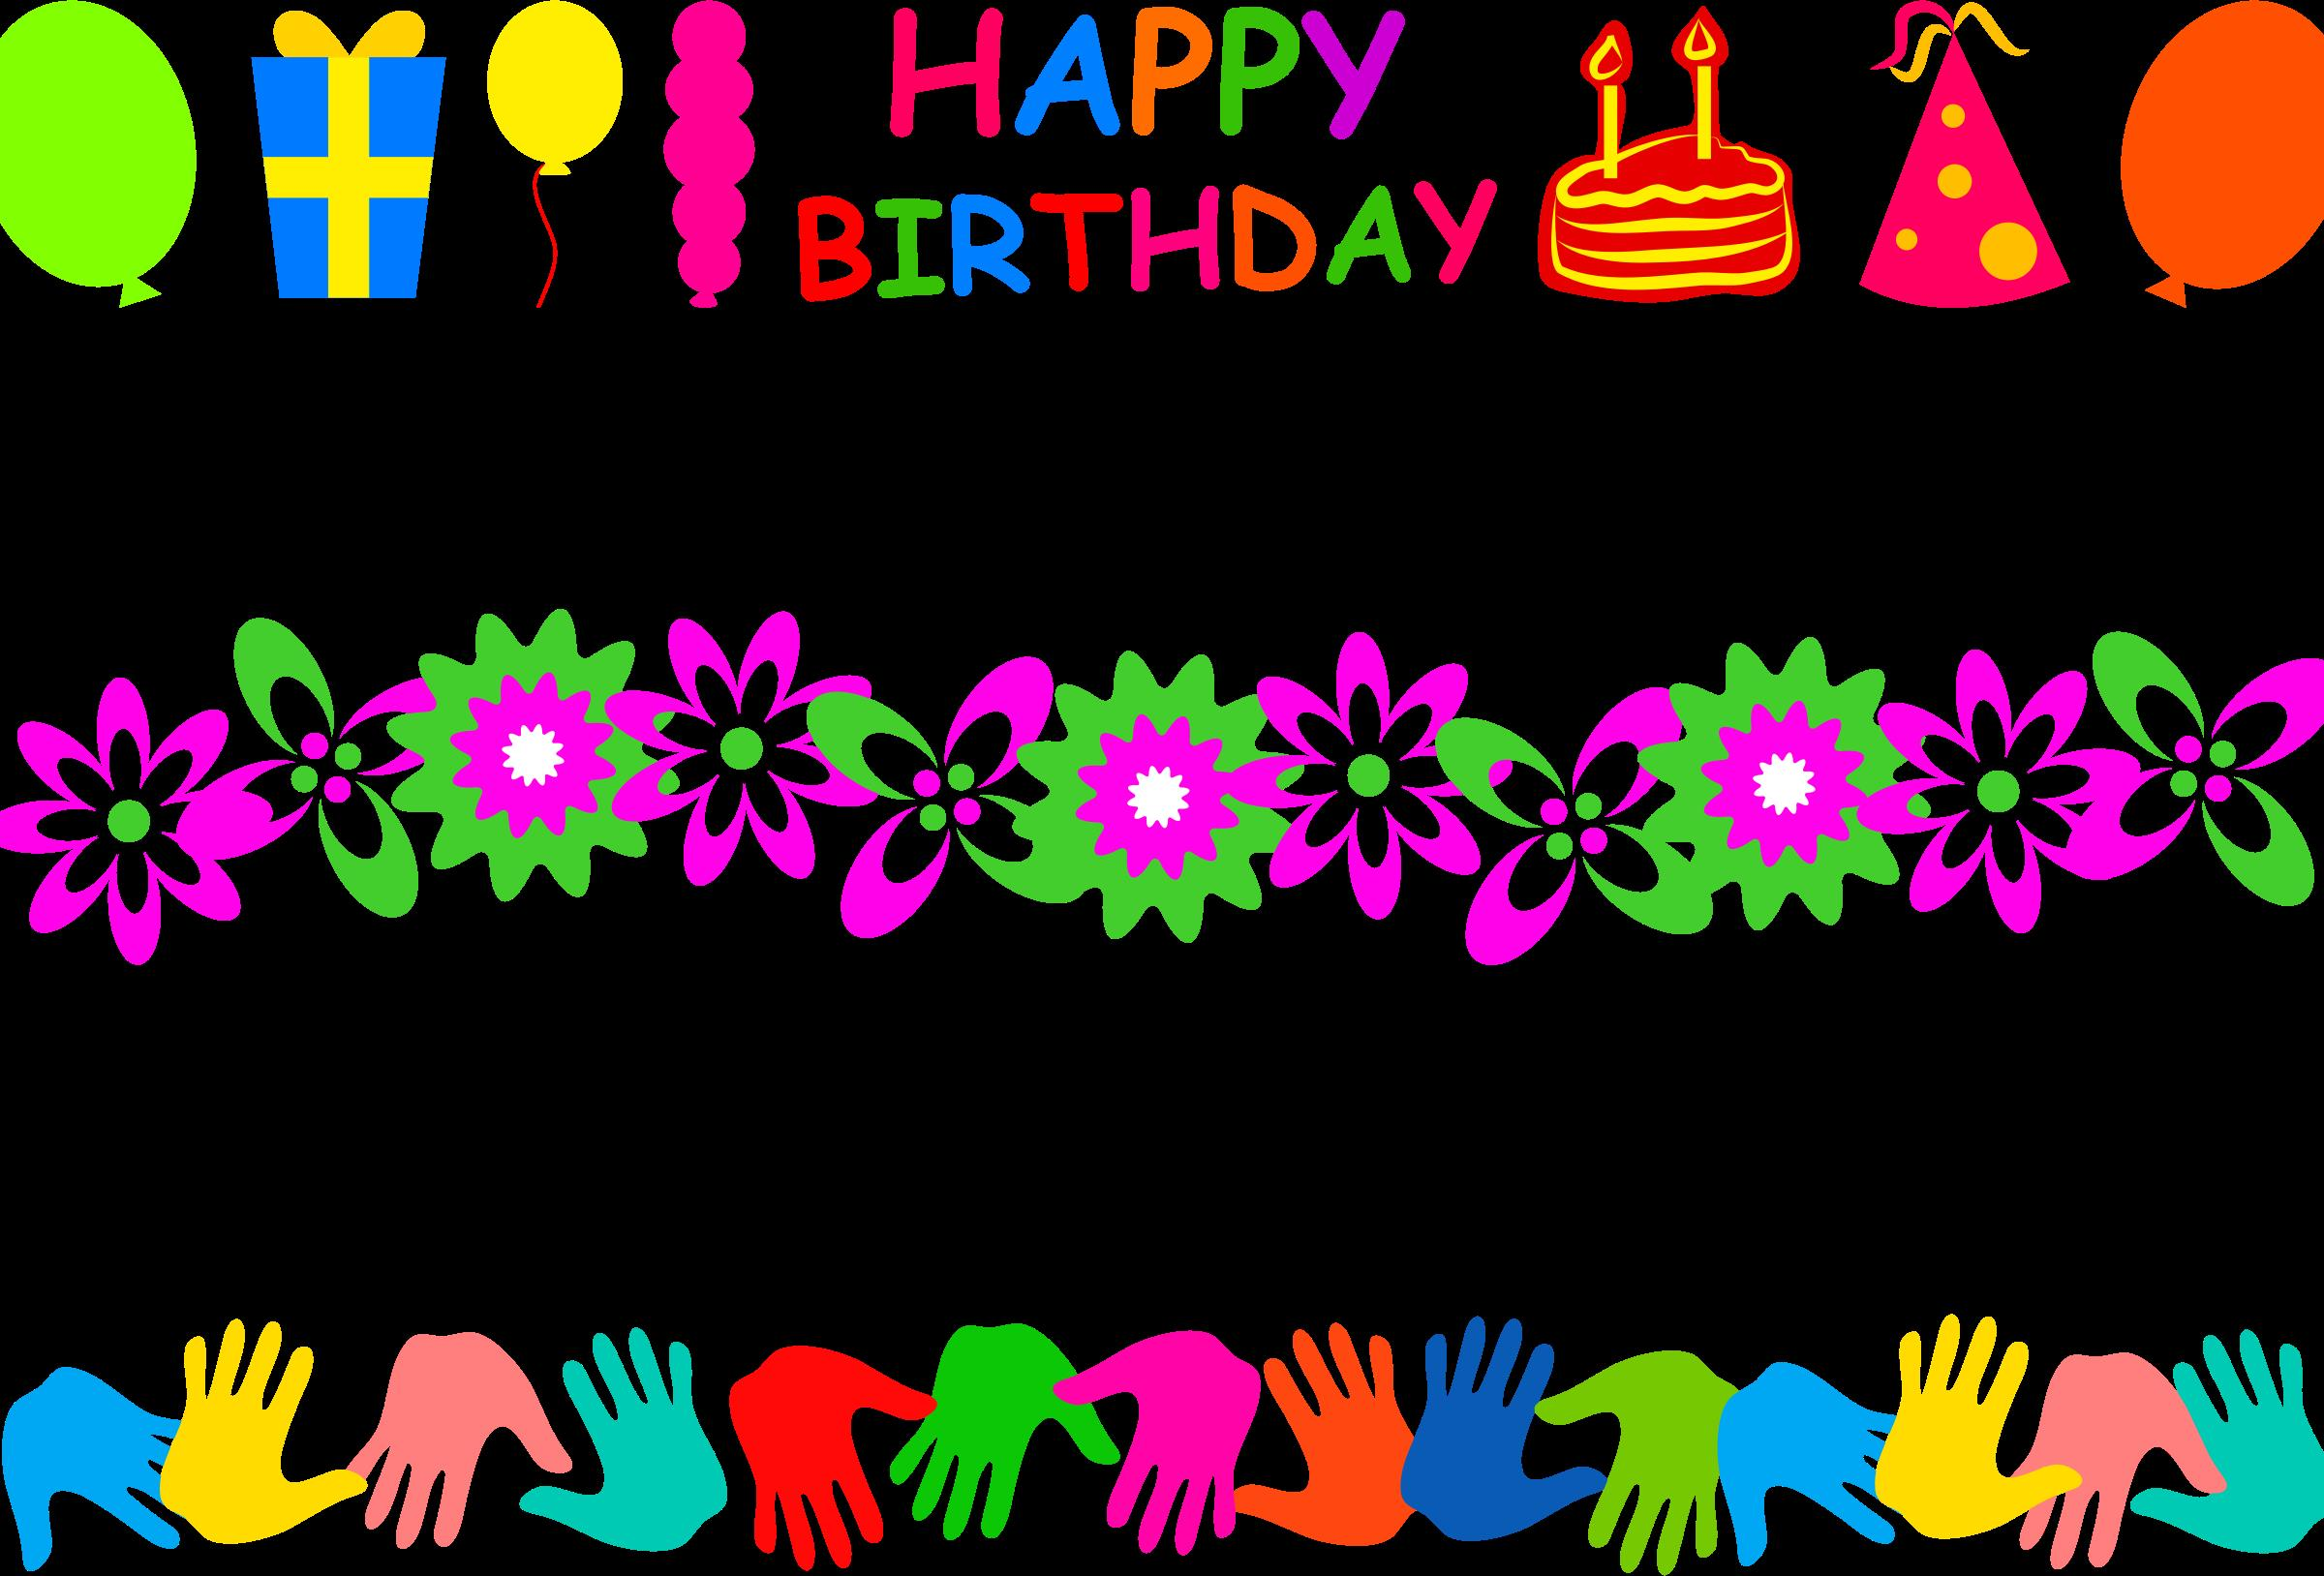 birthday border png ; page-borders